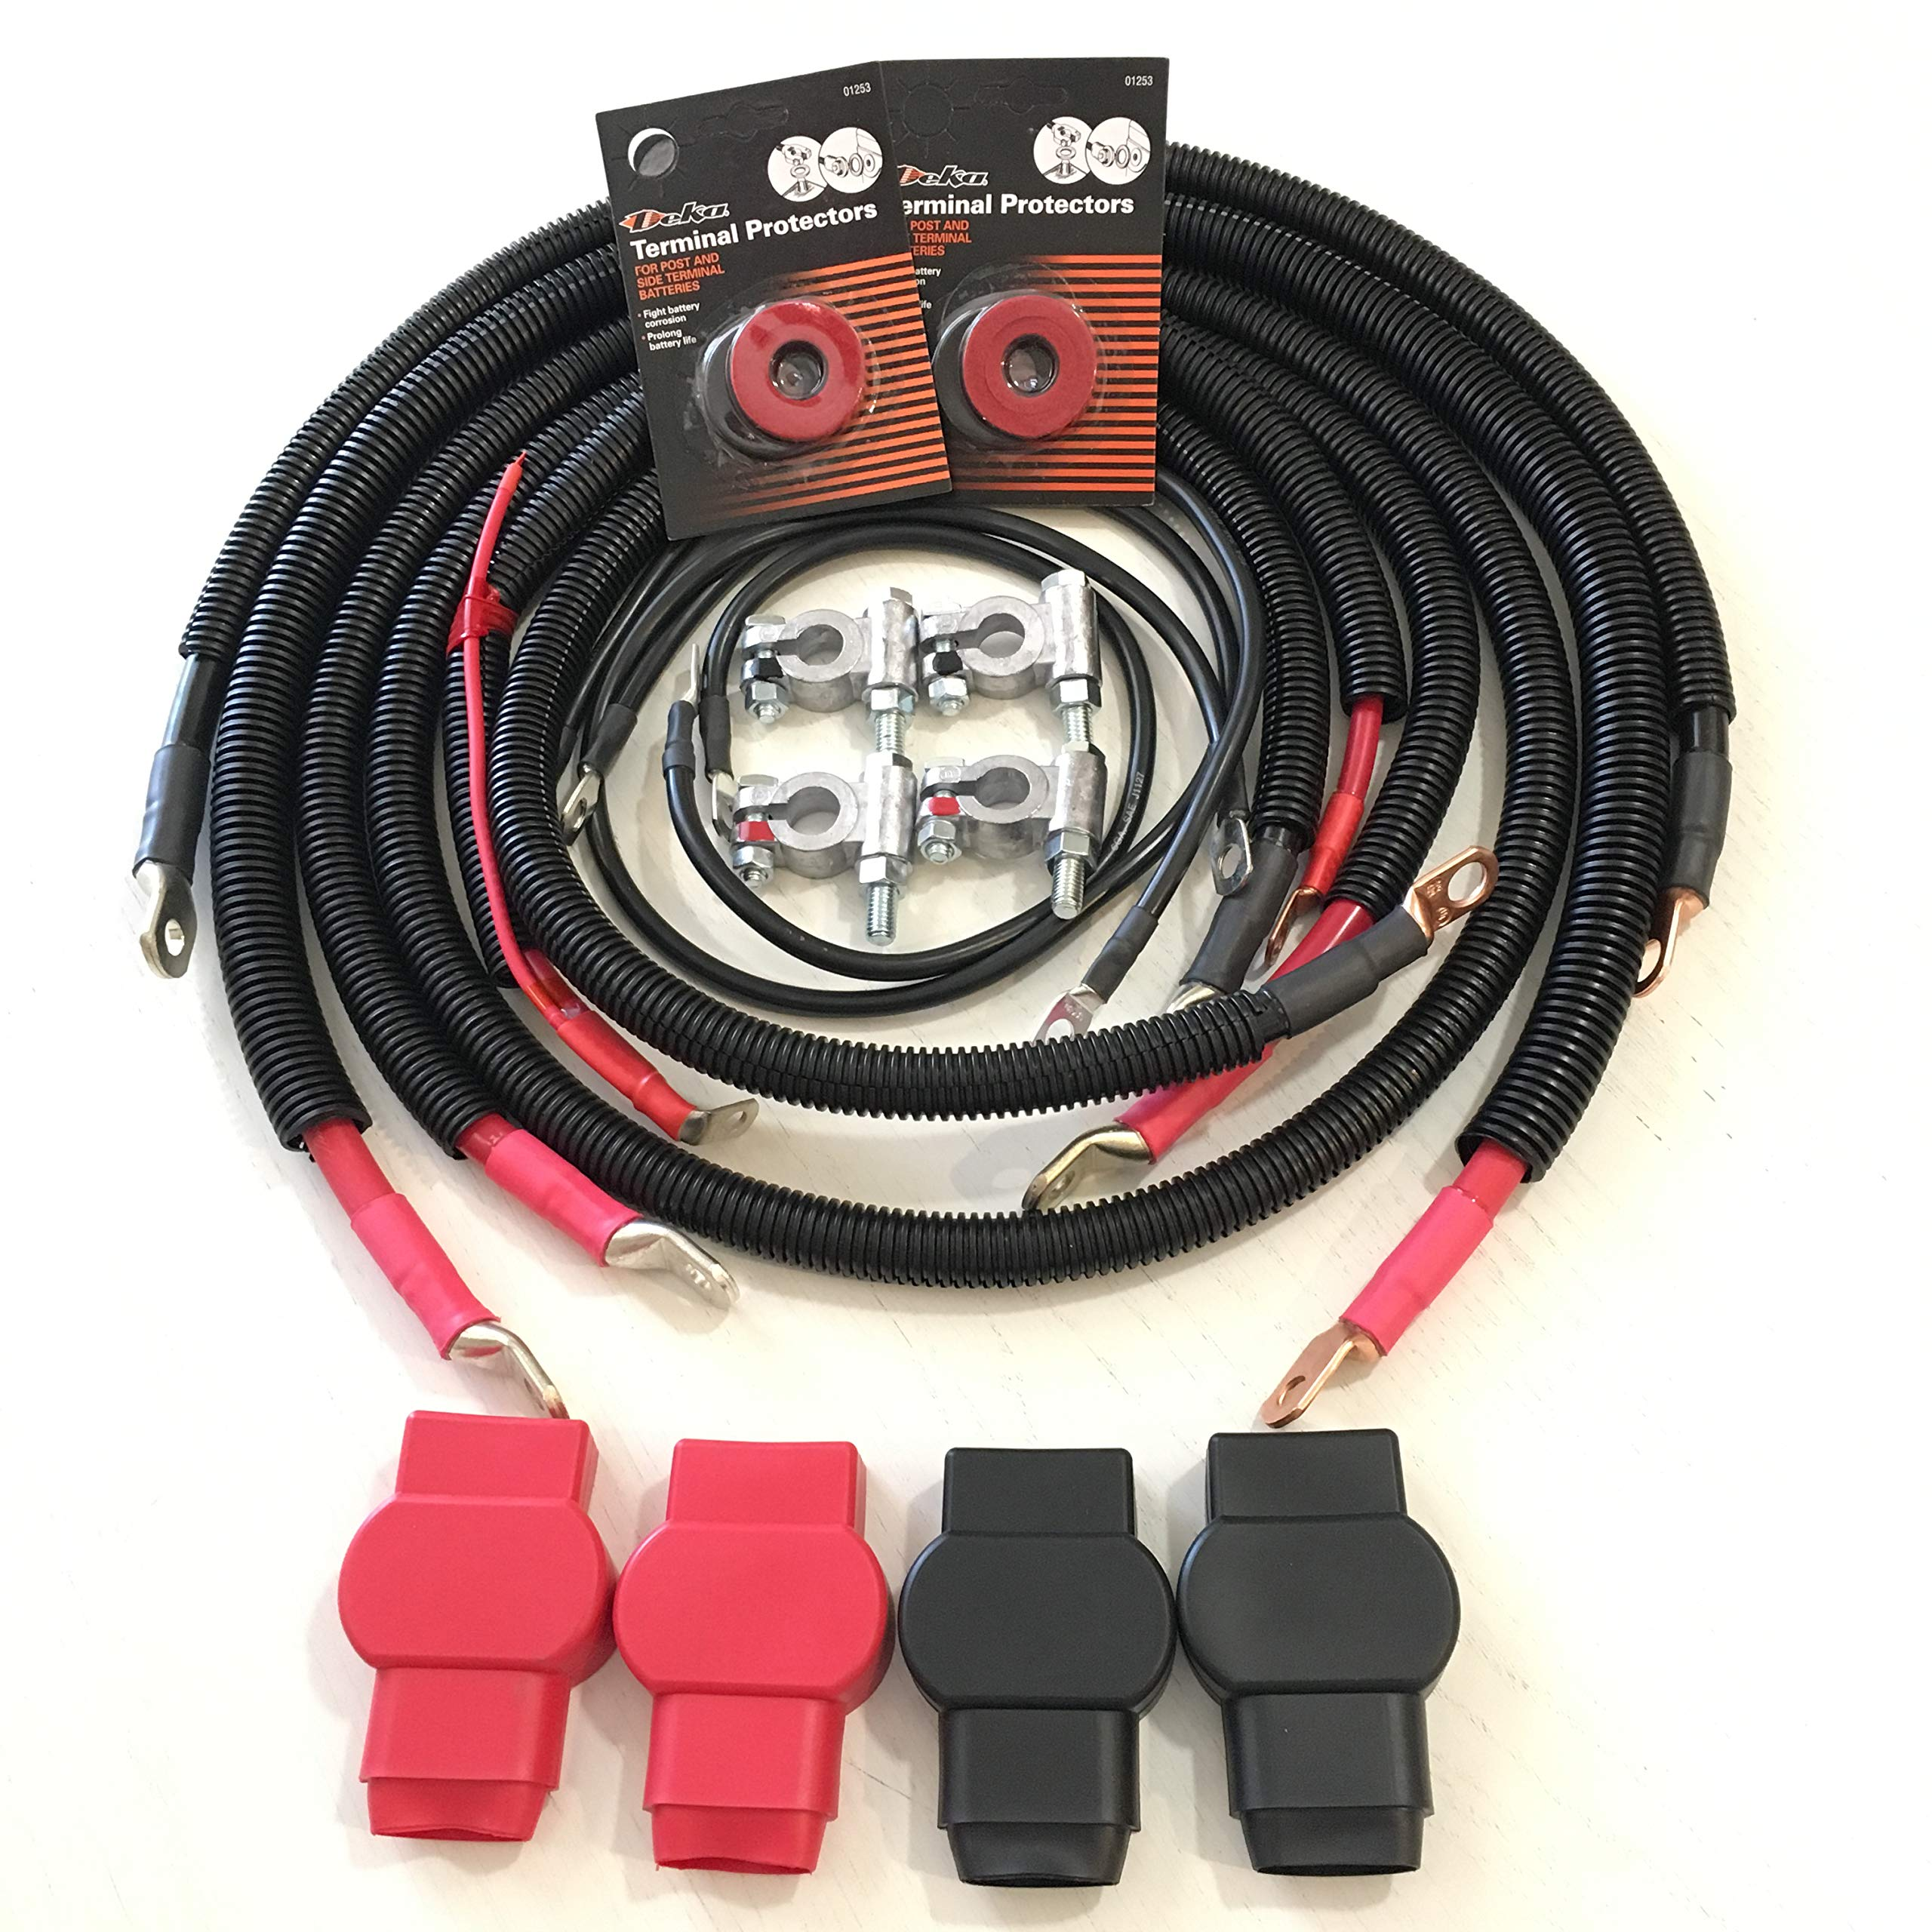 2003-2007 Gen 3 Dodge Ram 5.9L 24 valve Cummins Battery Cable Cables Set Kit by Custom Battery Cables